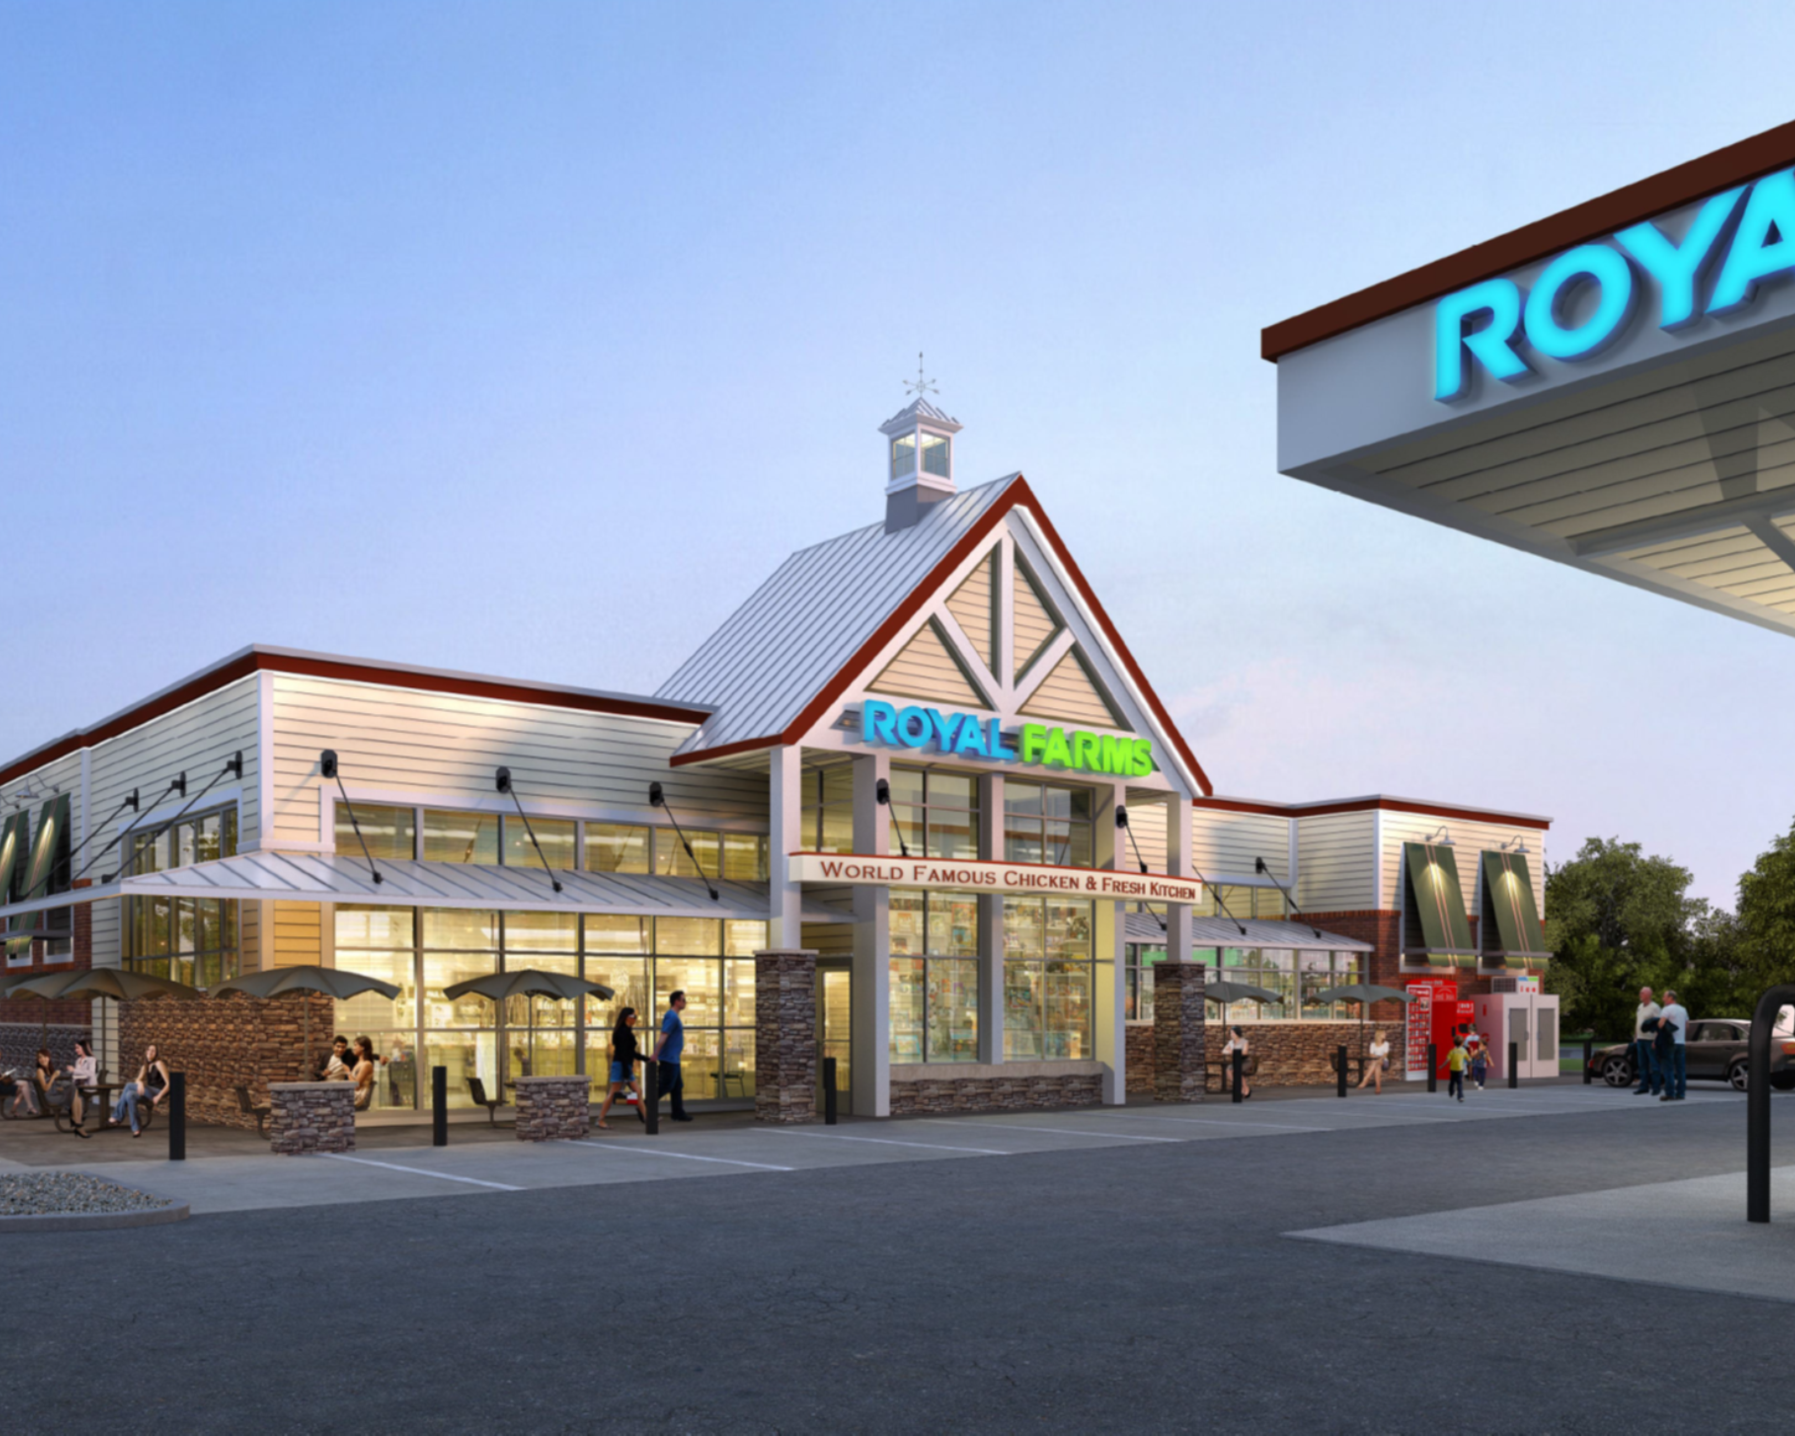 ROYAL FARMS & 18,000 SF Retail Development - Ground up DevelopmentChurchton, MD